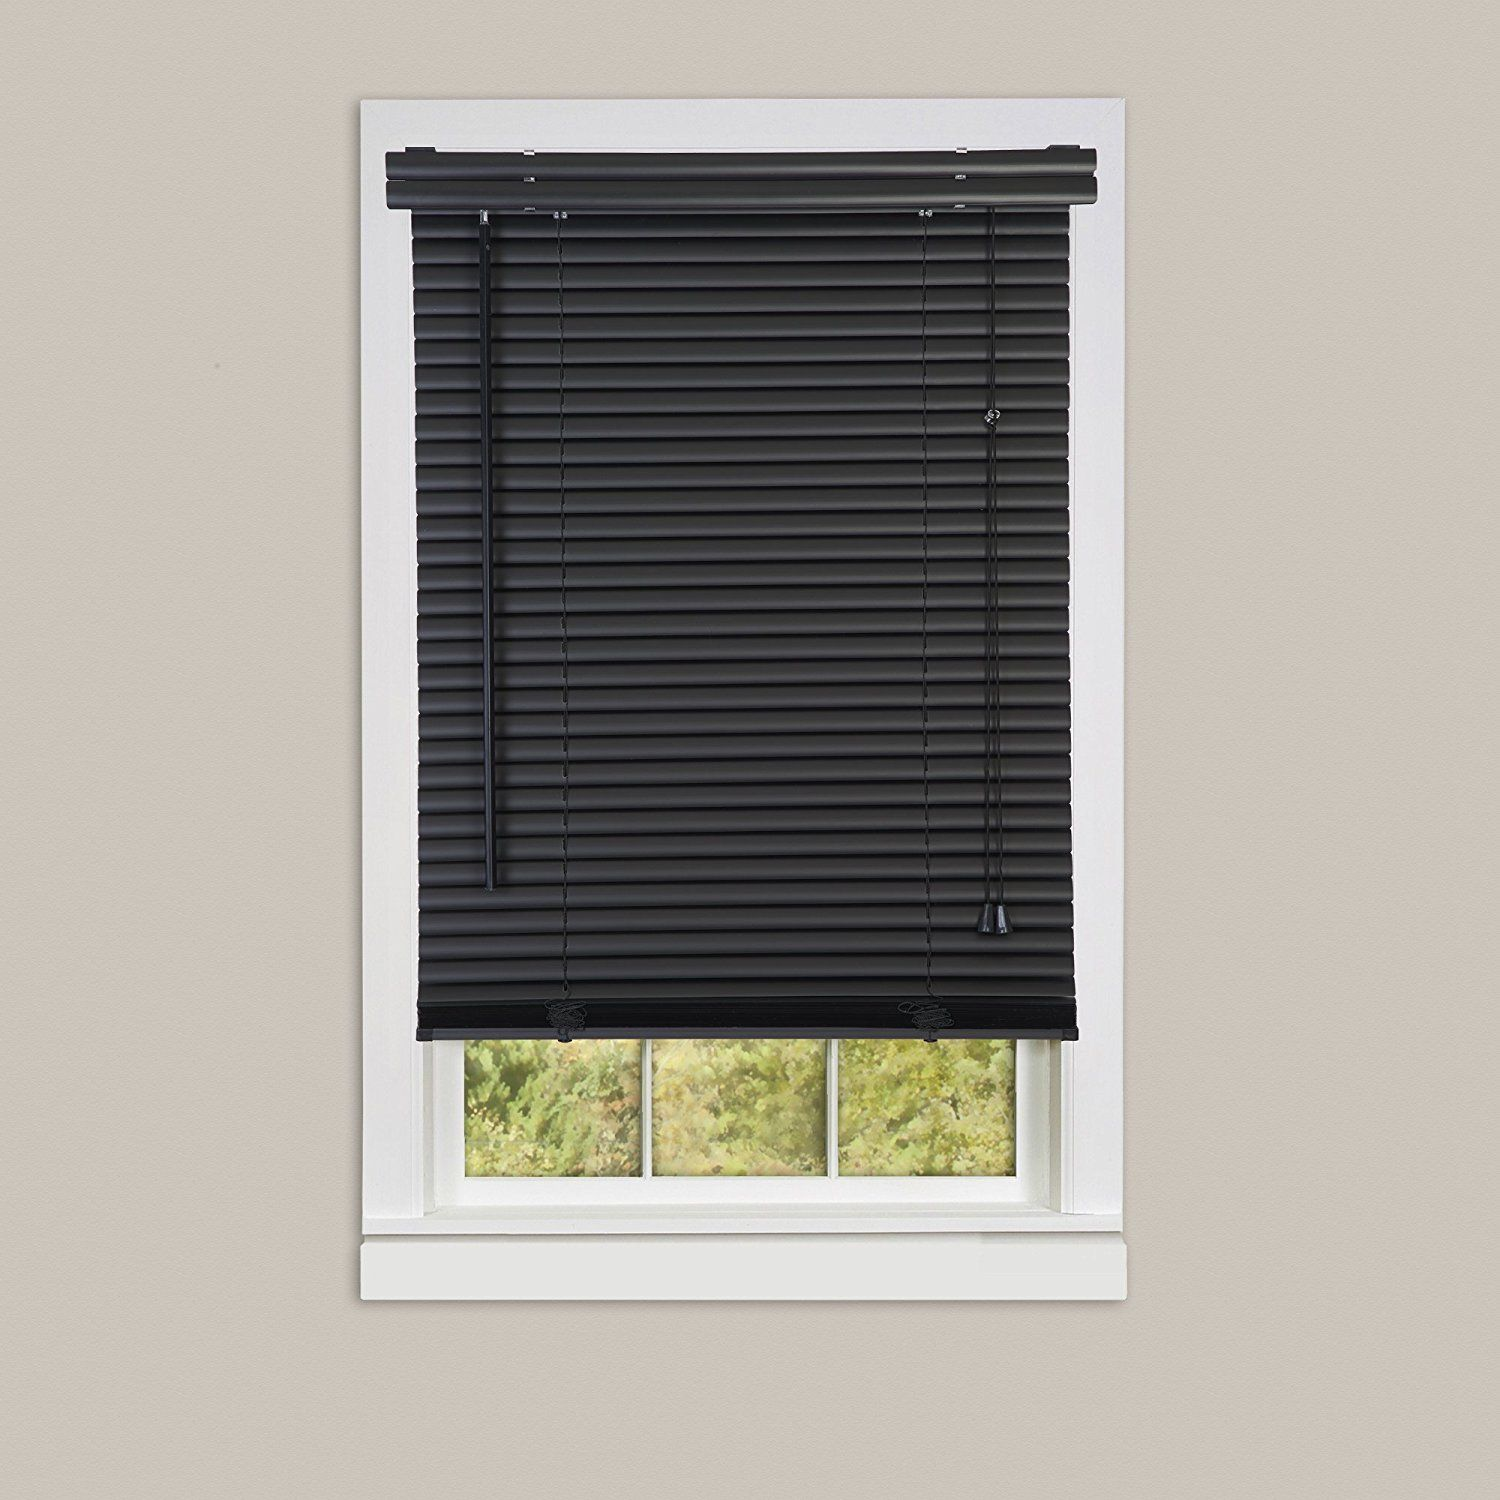 Achim Home Furnishings Morning Star 1 Inch Mini Blinds 30 By 72 Inch Black See This Great Product A Blinds For Small Windows Faux Wood Blinds Wood Blinds